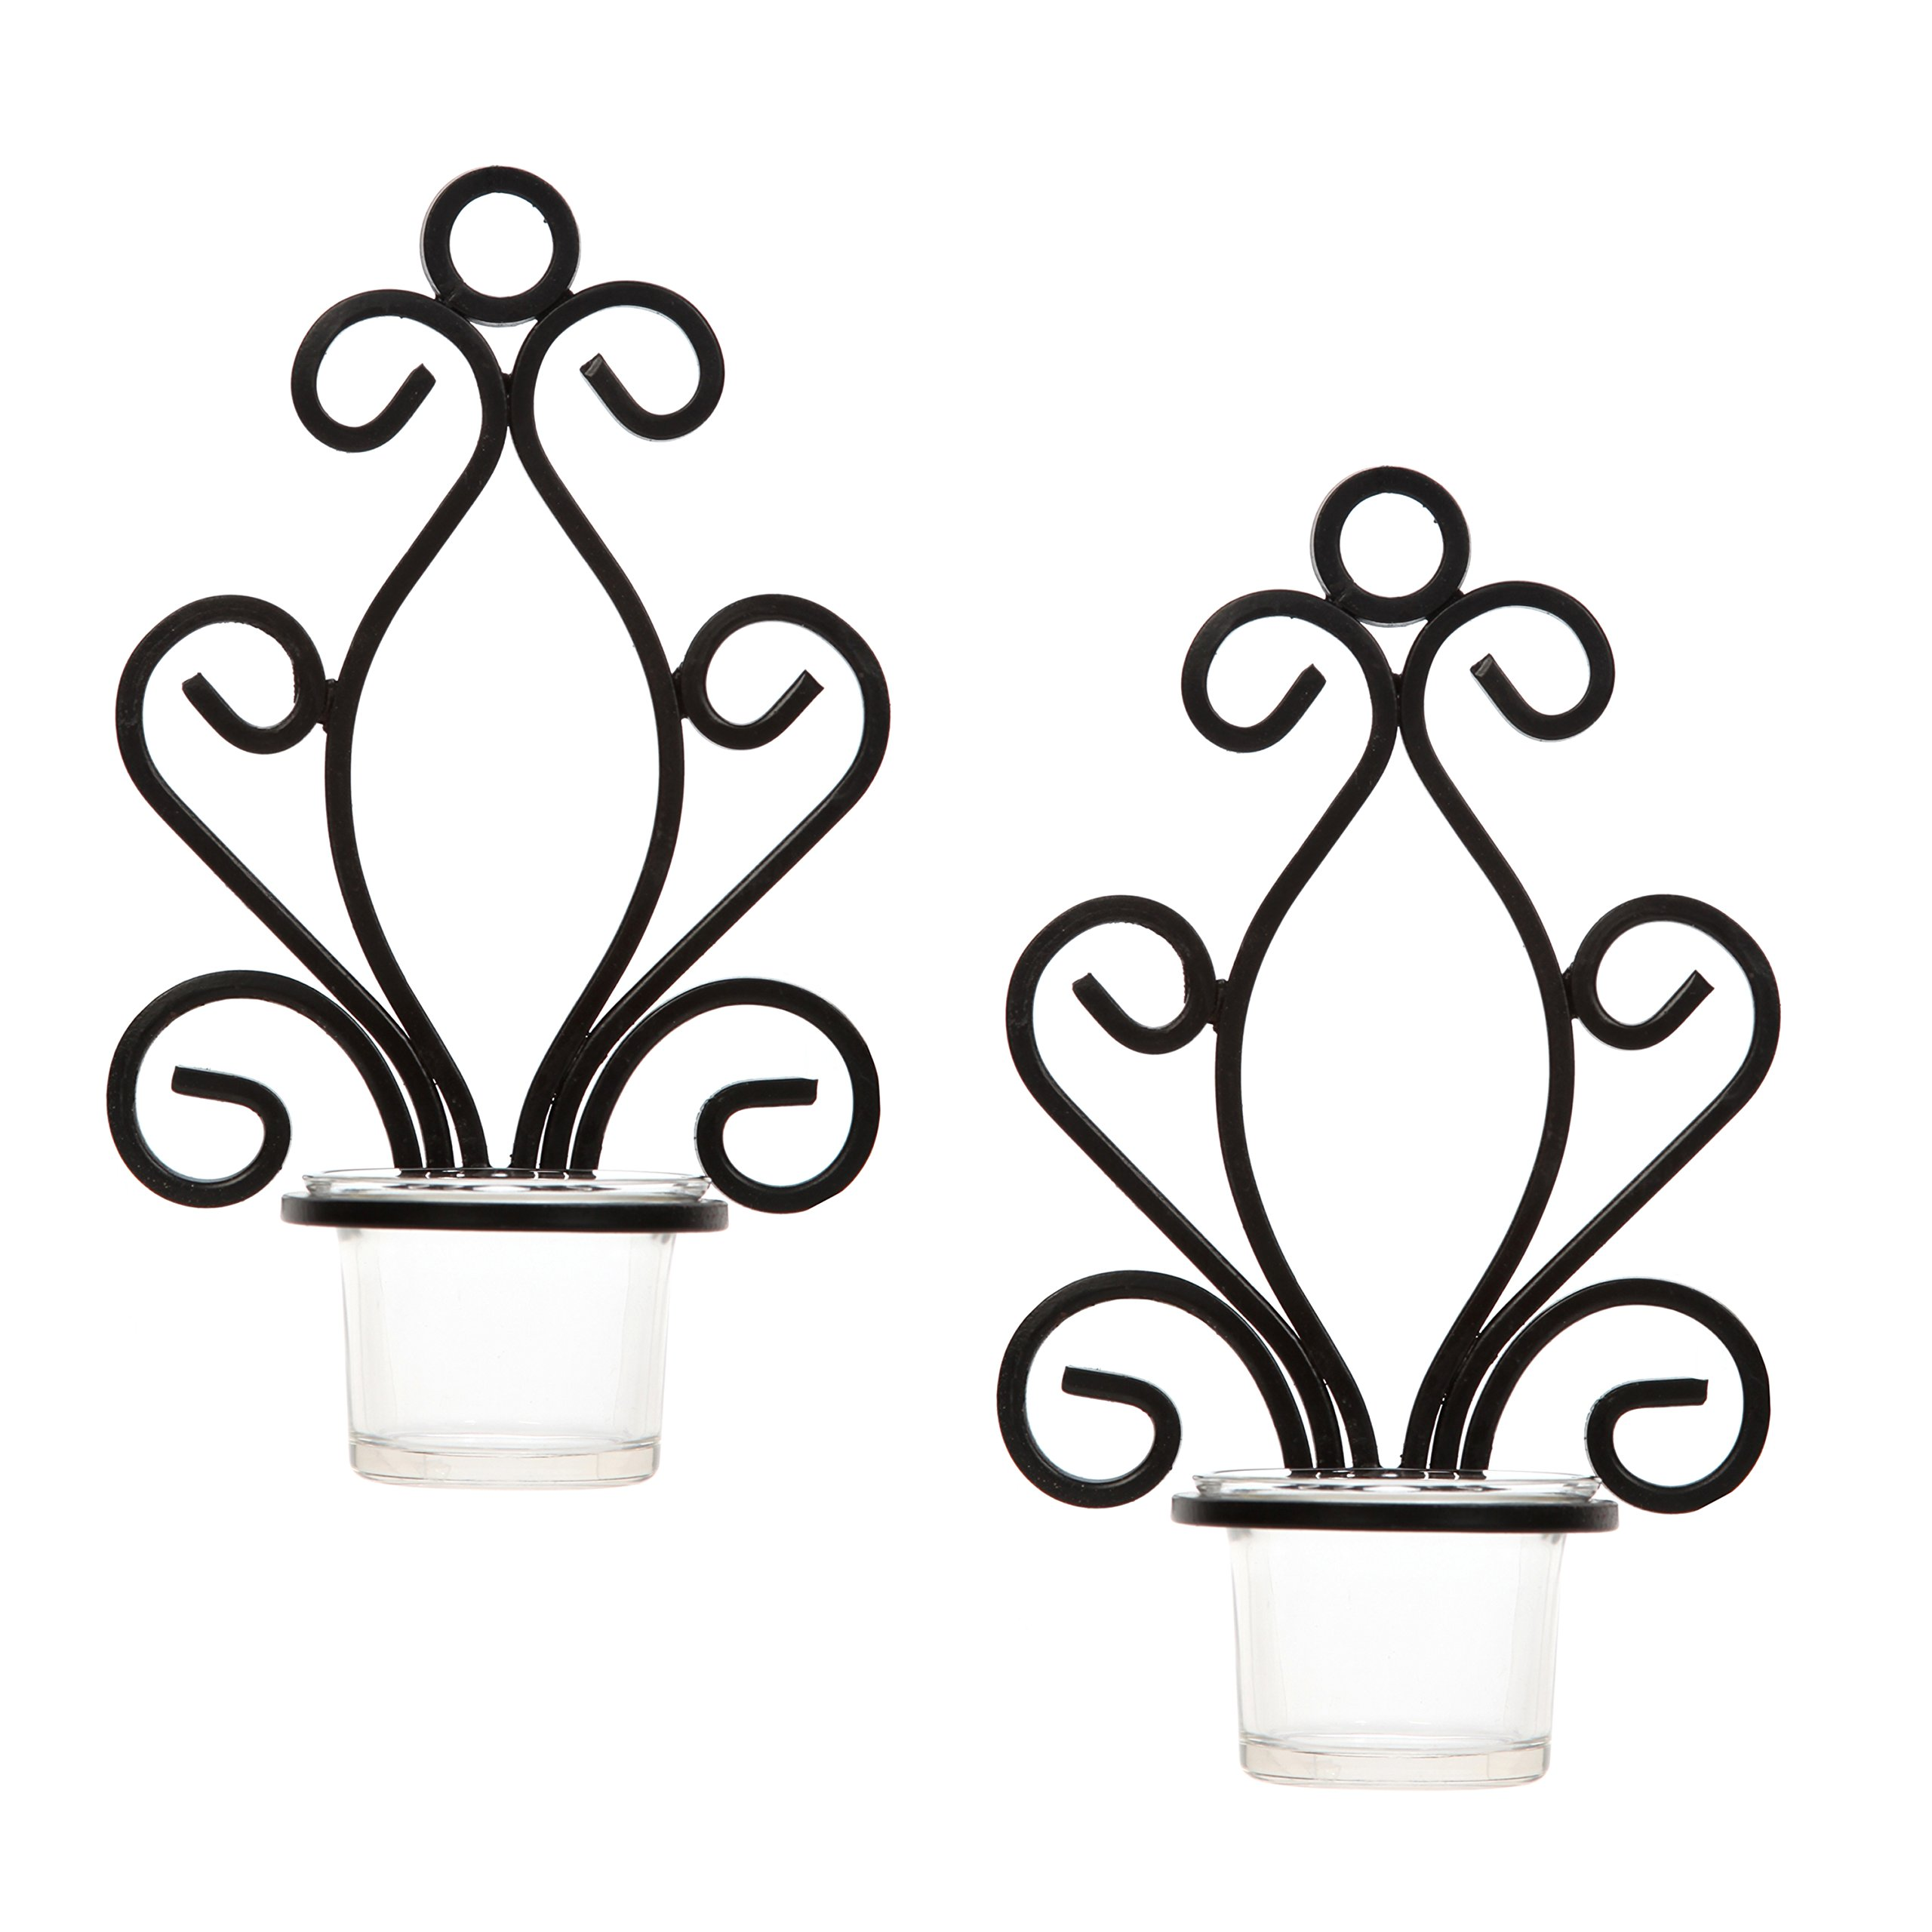 Hosley Set of Two, Iron Wall Sconce, Tea Light Candle Sconces, 7.68'' High. Ideal Gift for Spa, Aromatherapy, wedding, LED Votive Candle Gardens. Hand made by Artisans O3